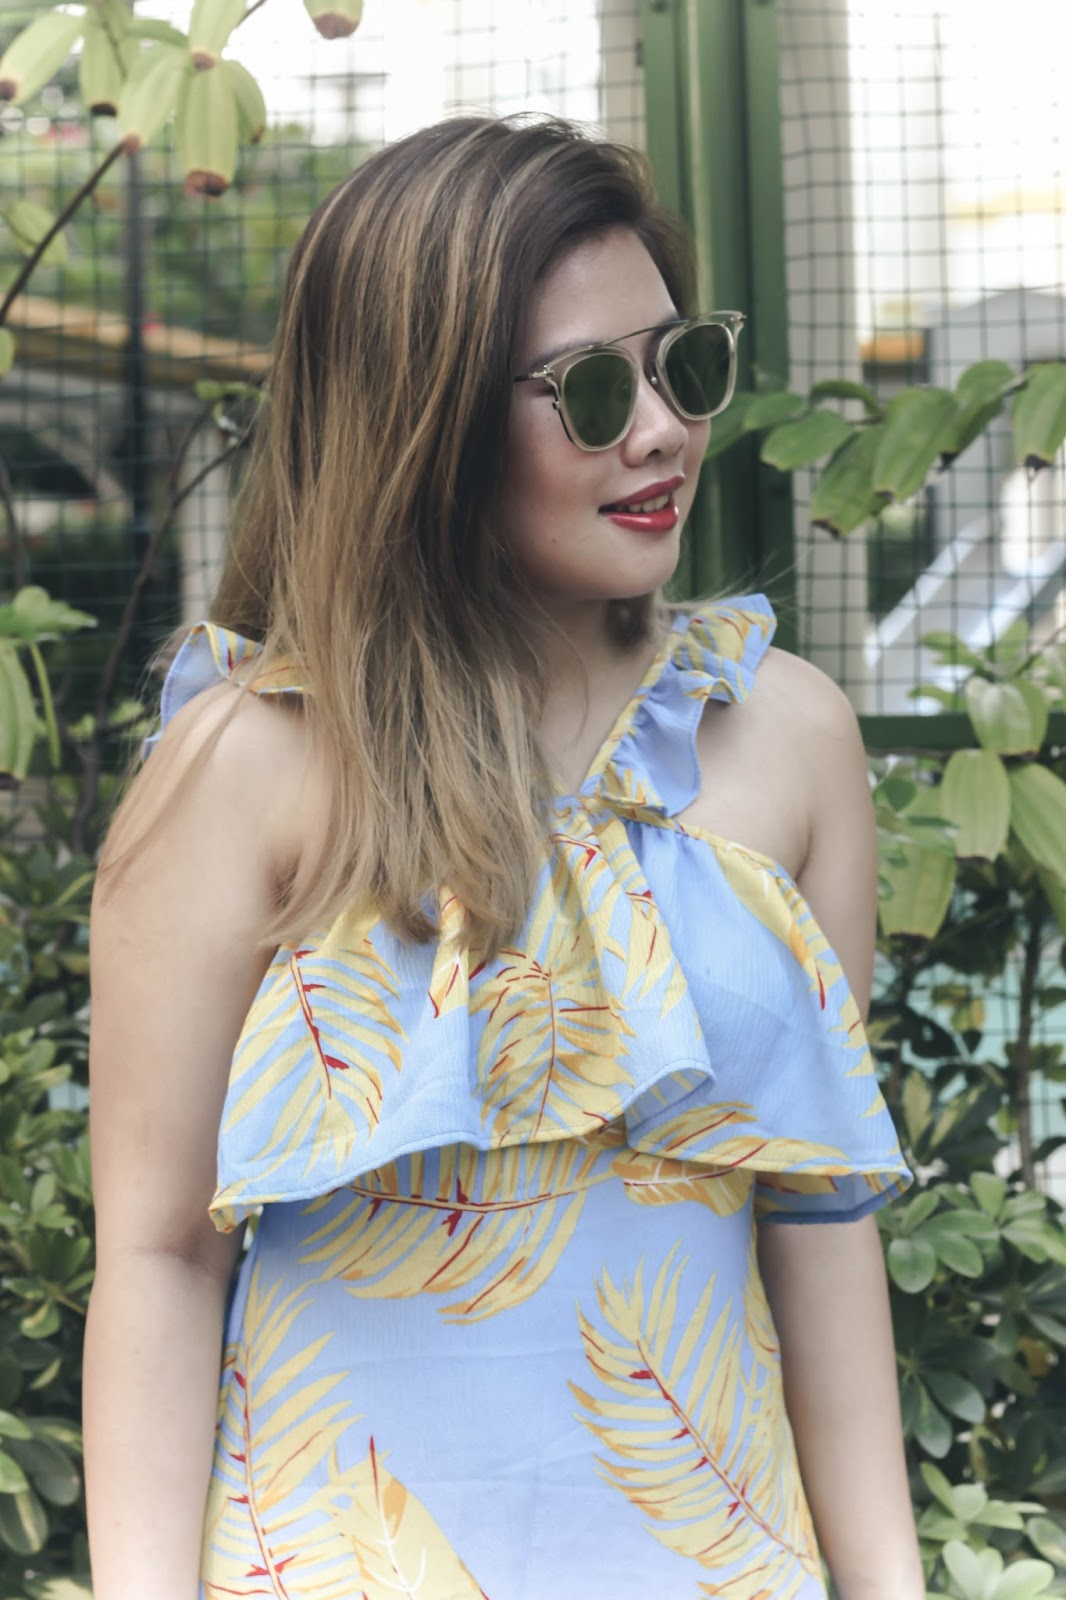 singapore blogger style street fashion outfit photographer look book stylexstyle